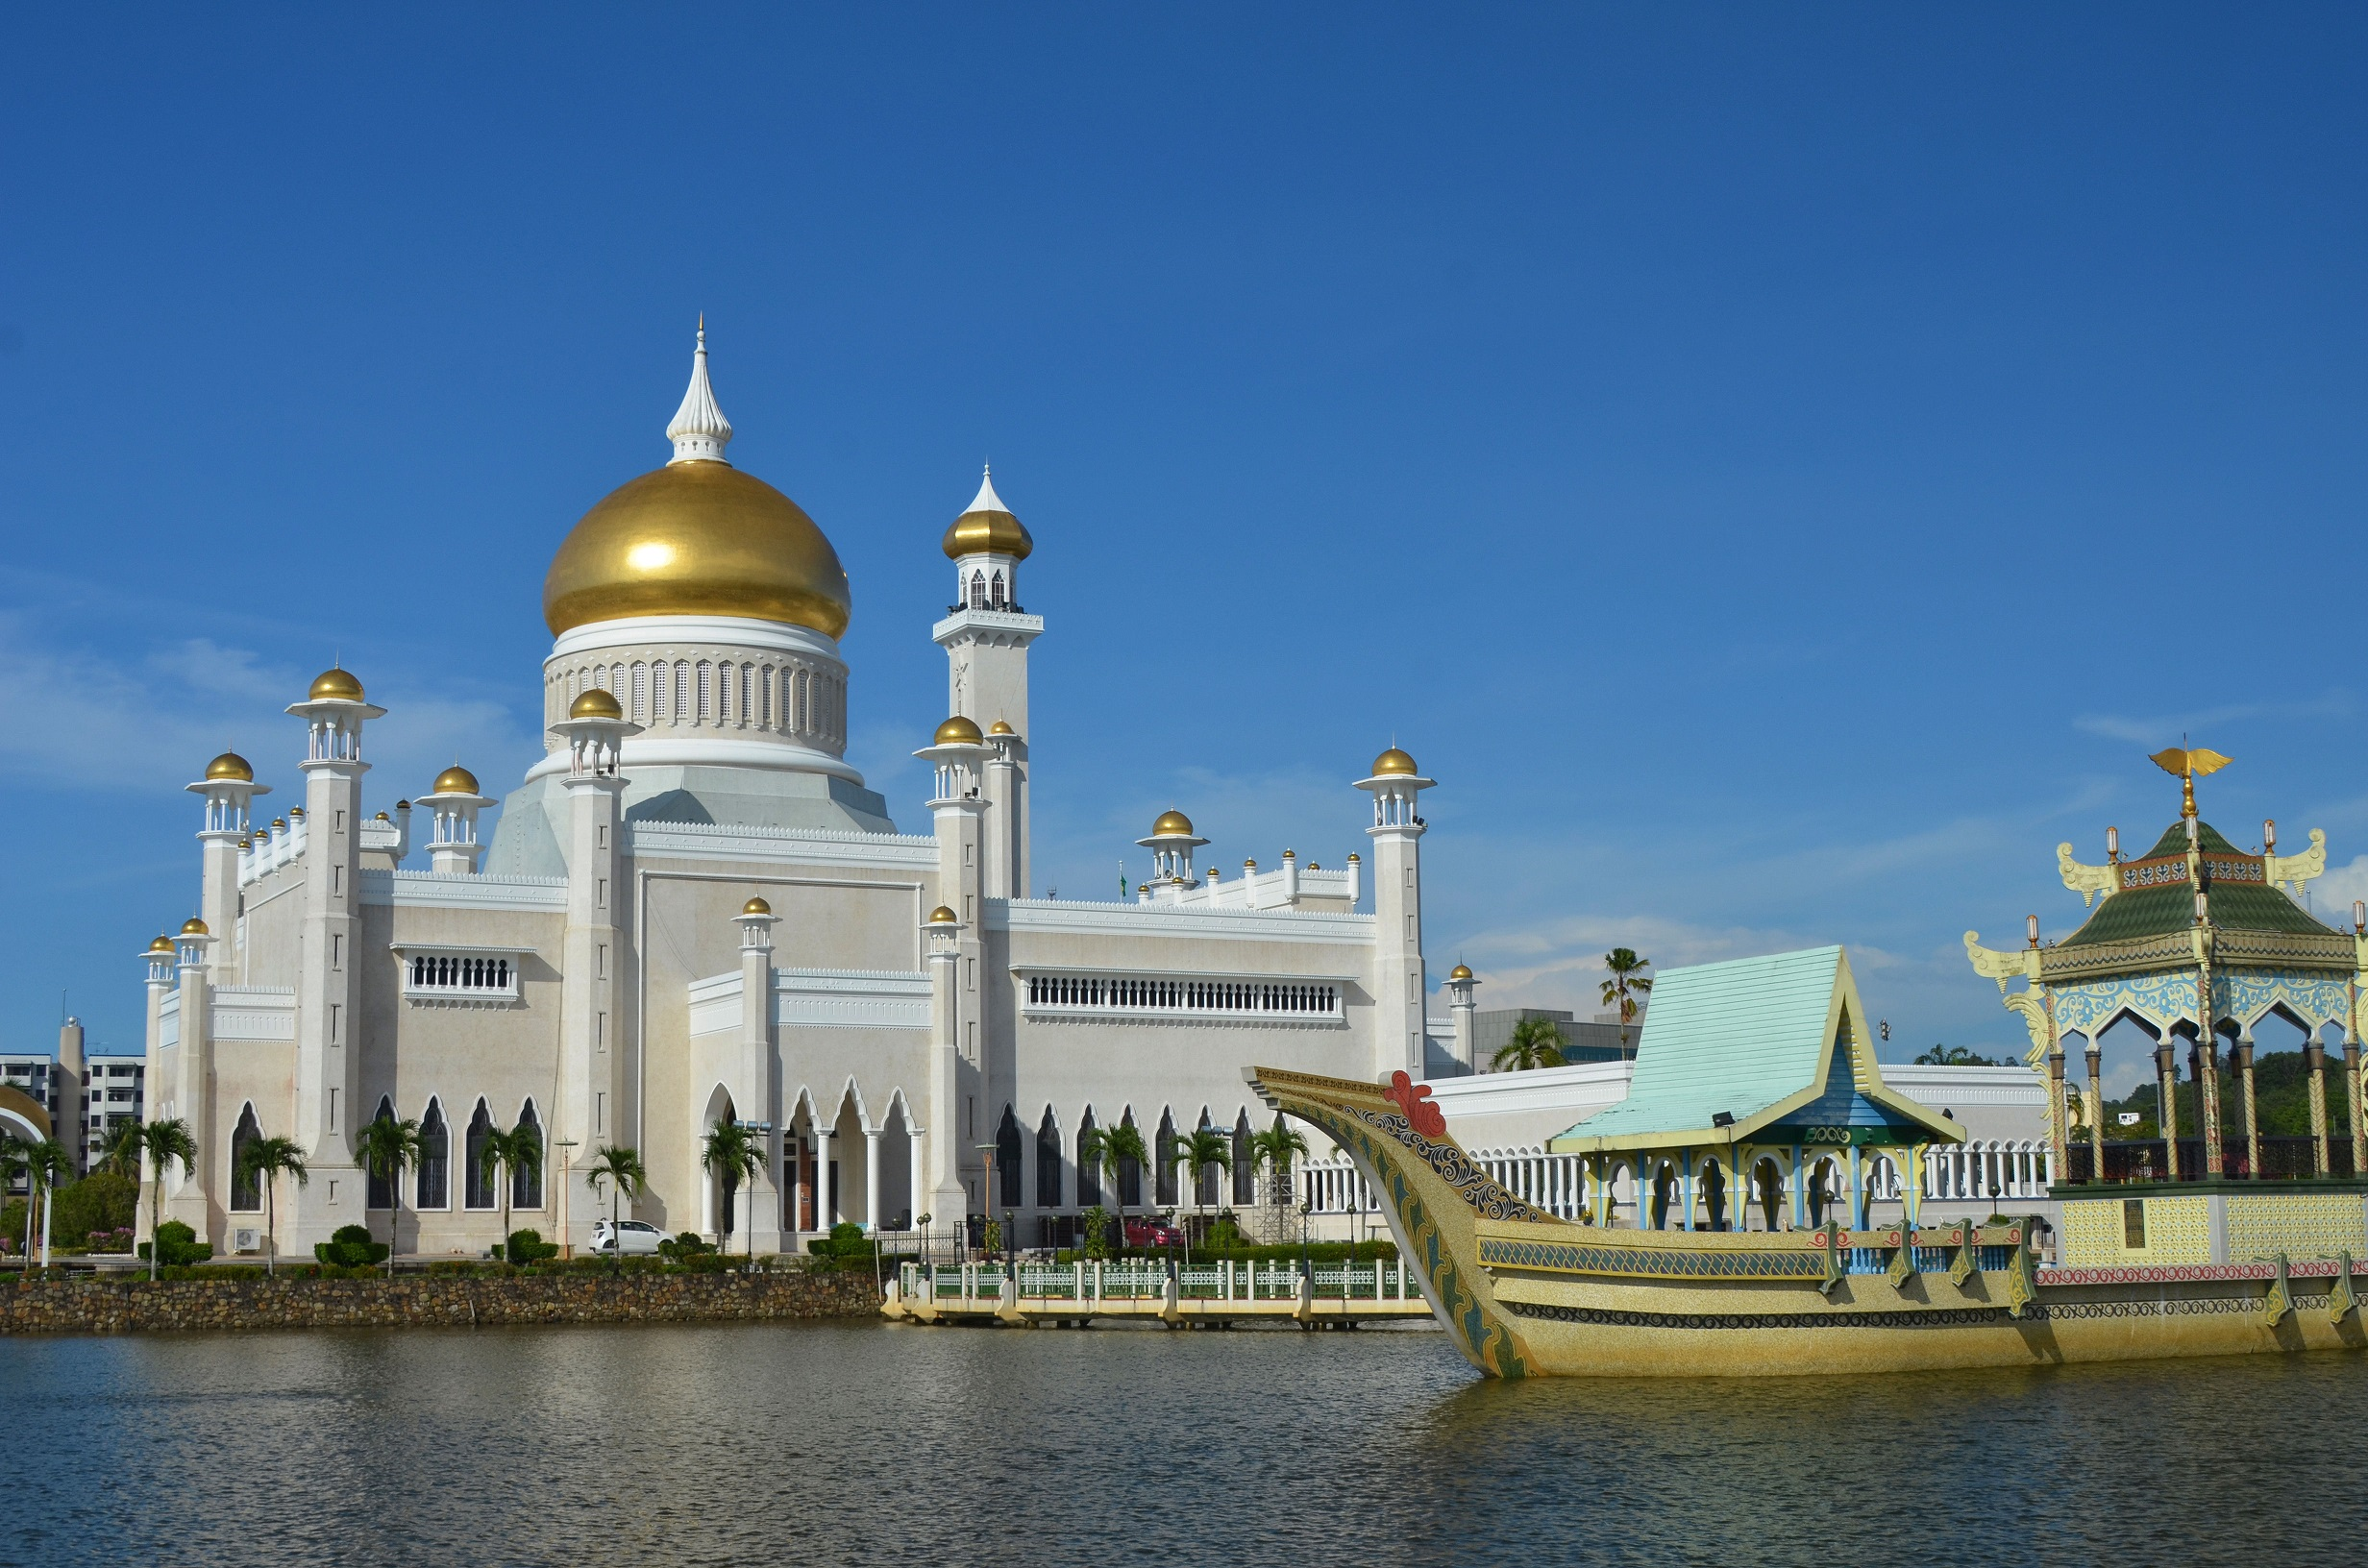 """The Omar Ali Saifuddien Mosque in Brunei's capital is named after the 28th Sultan, the father of the reigning Sultan Hassanal Bolkiah. The mosque's 52 m (171 ft) high main dome is completely covered in pure gold. The structure is known as one of the most beautiful mosques in Asia Pacific. Completed in 1958, the mosque combines Mughal and Italian architecture. The barge in the lagoon surrounding the mosque was installed to commemorate the 1,400th anniversary of the """"coming down of the Quran"""". As a place of worship for the Muslim community in Brunei, the mosque dominates the skyline of the capital city."""